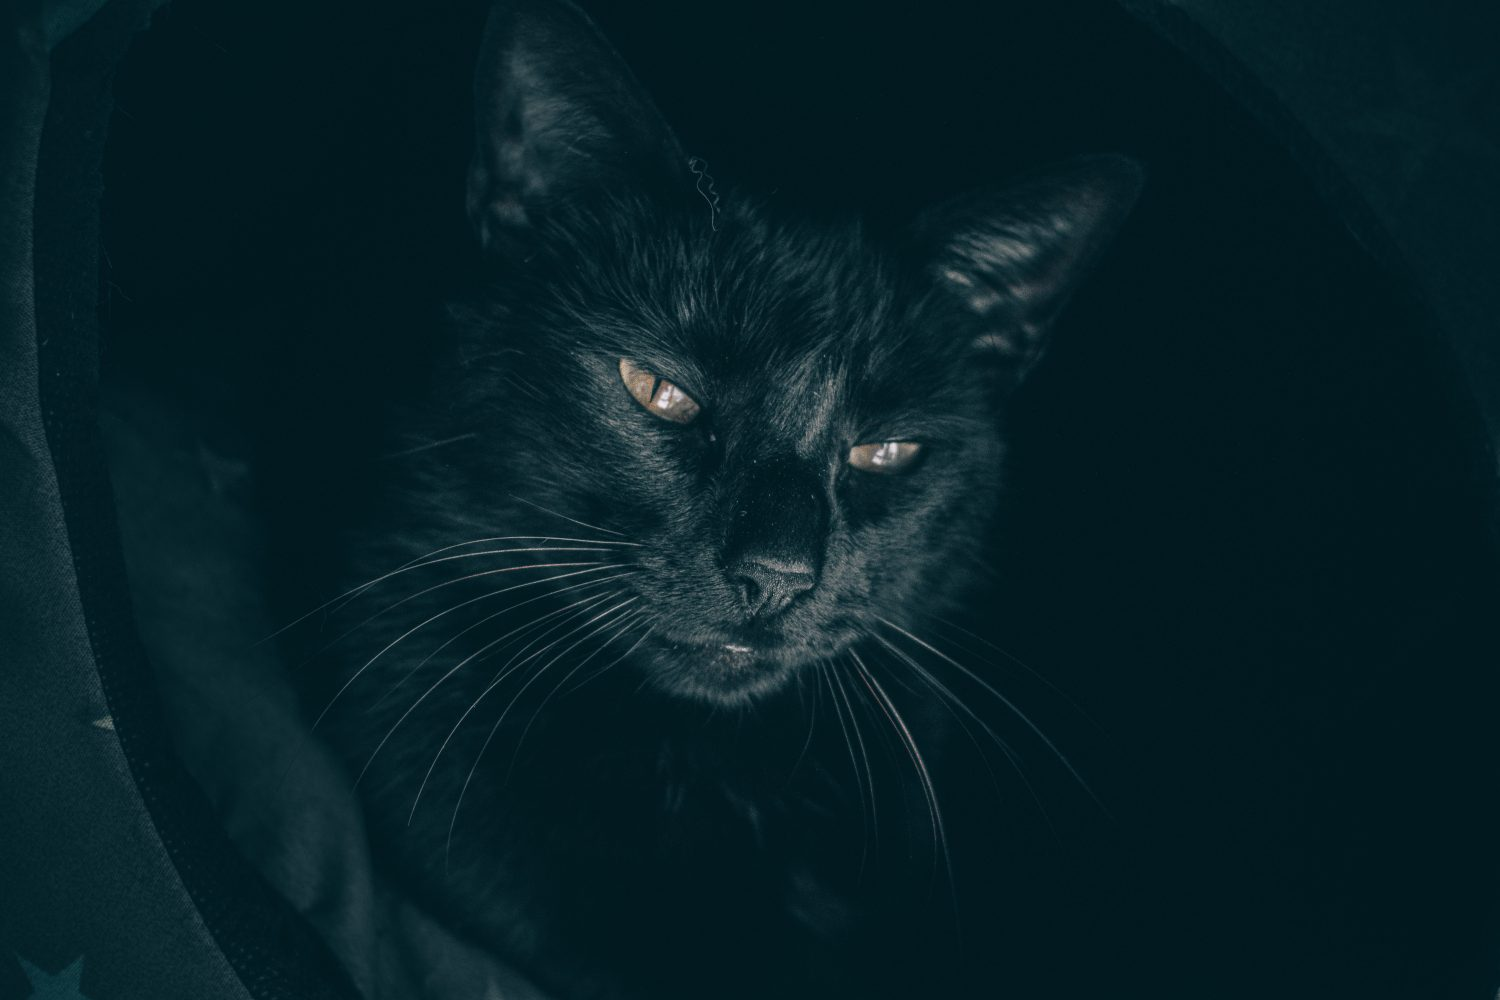 Brilliant Black Cats for Black Cat Awareness Month